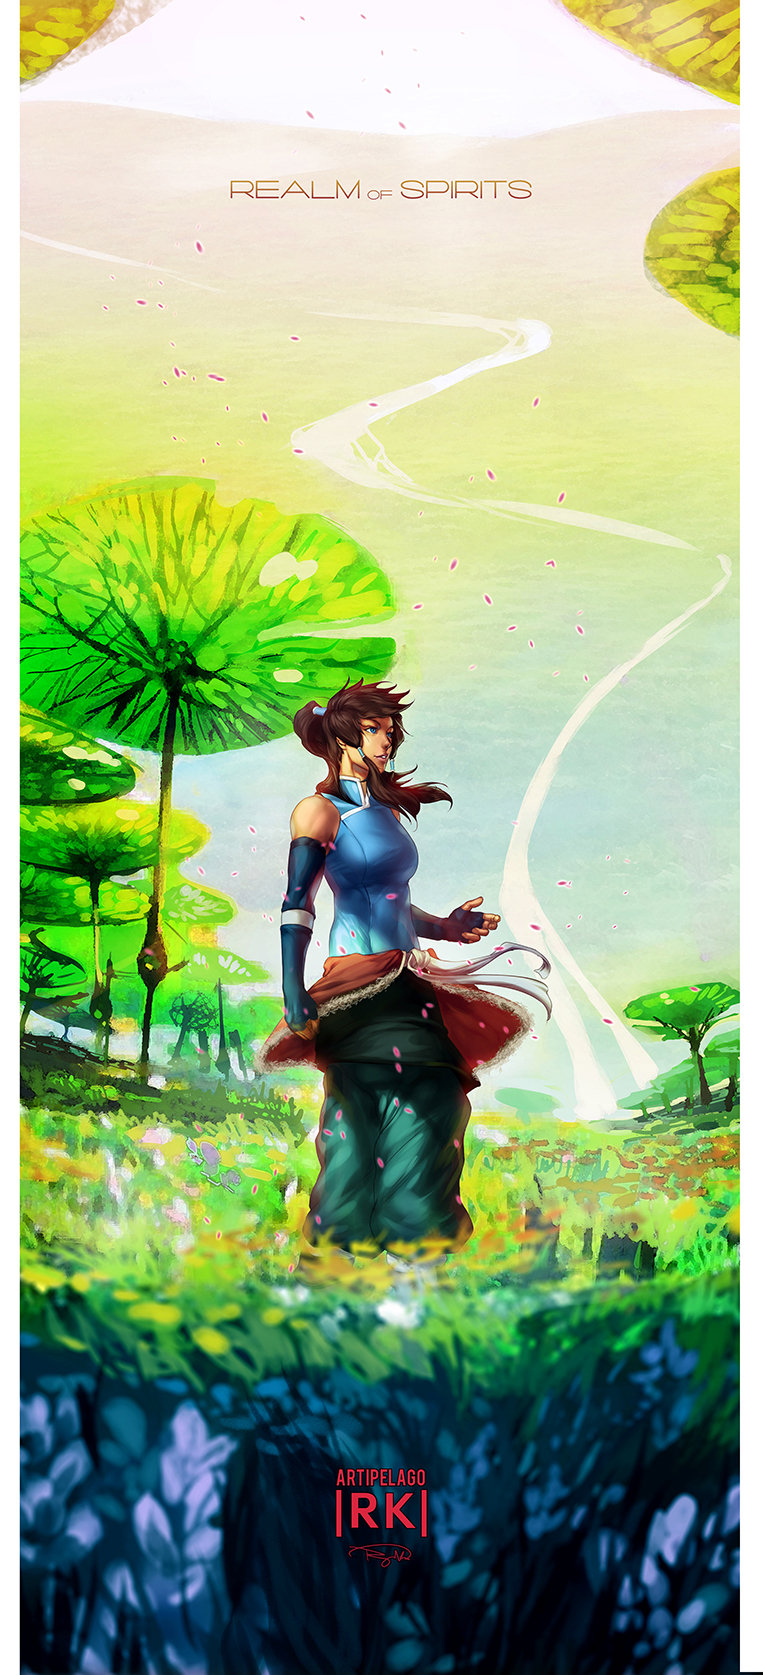 Korra: Realm of Spirits by Artipelago